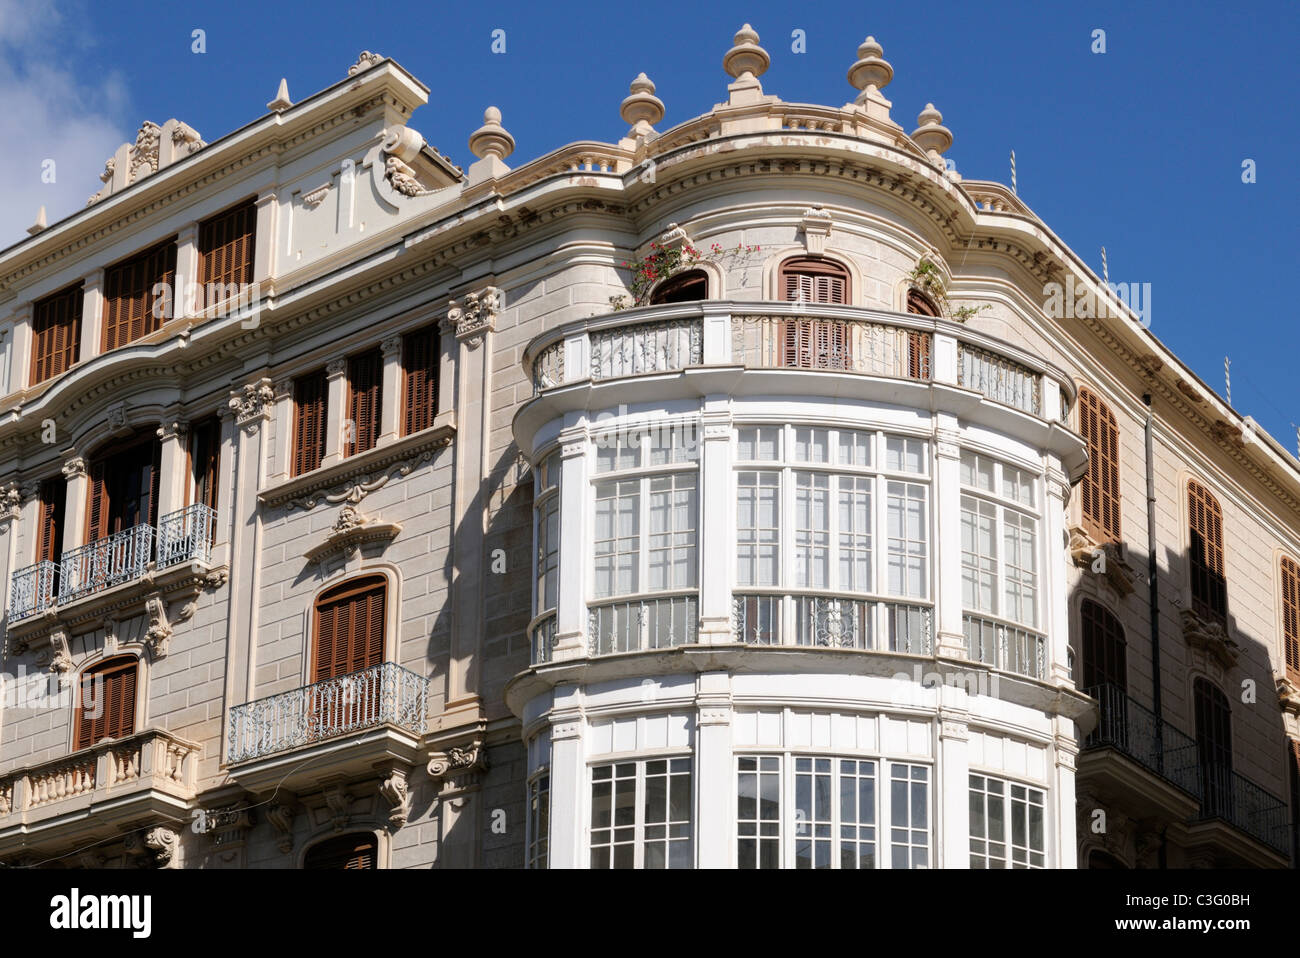 Gebäude mit Erkerfenster in Palma, Mallorca, Spanien, Europa. - Building with bay window in Palma, Majorca, - Stock Image